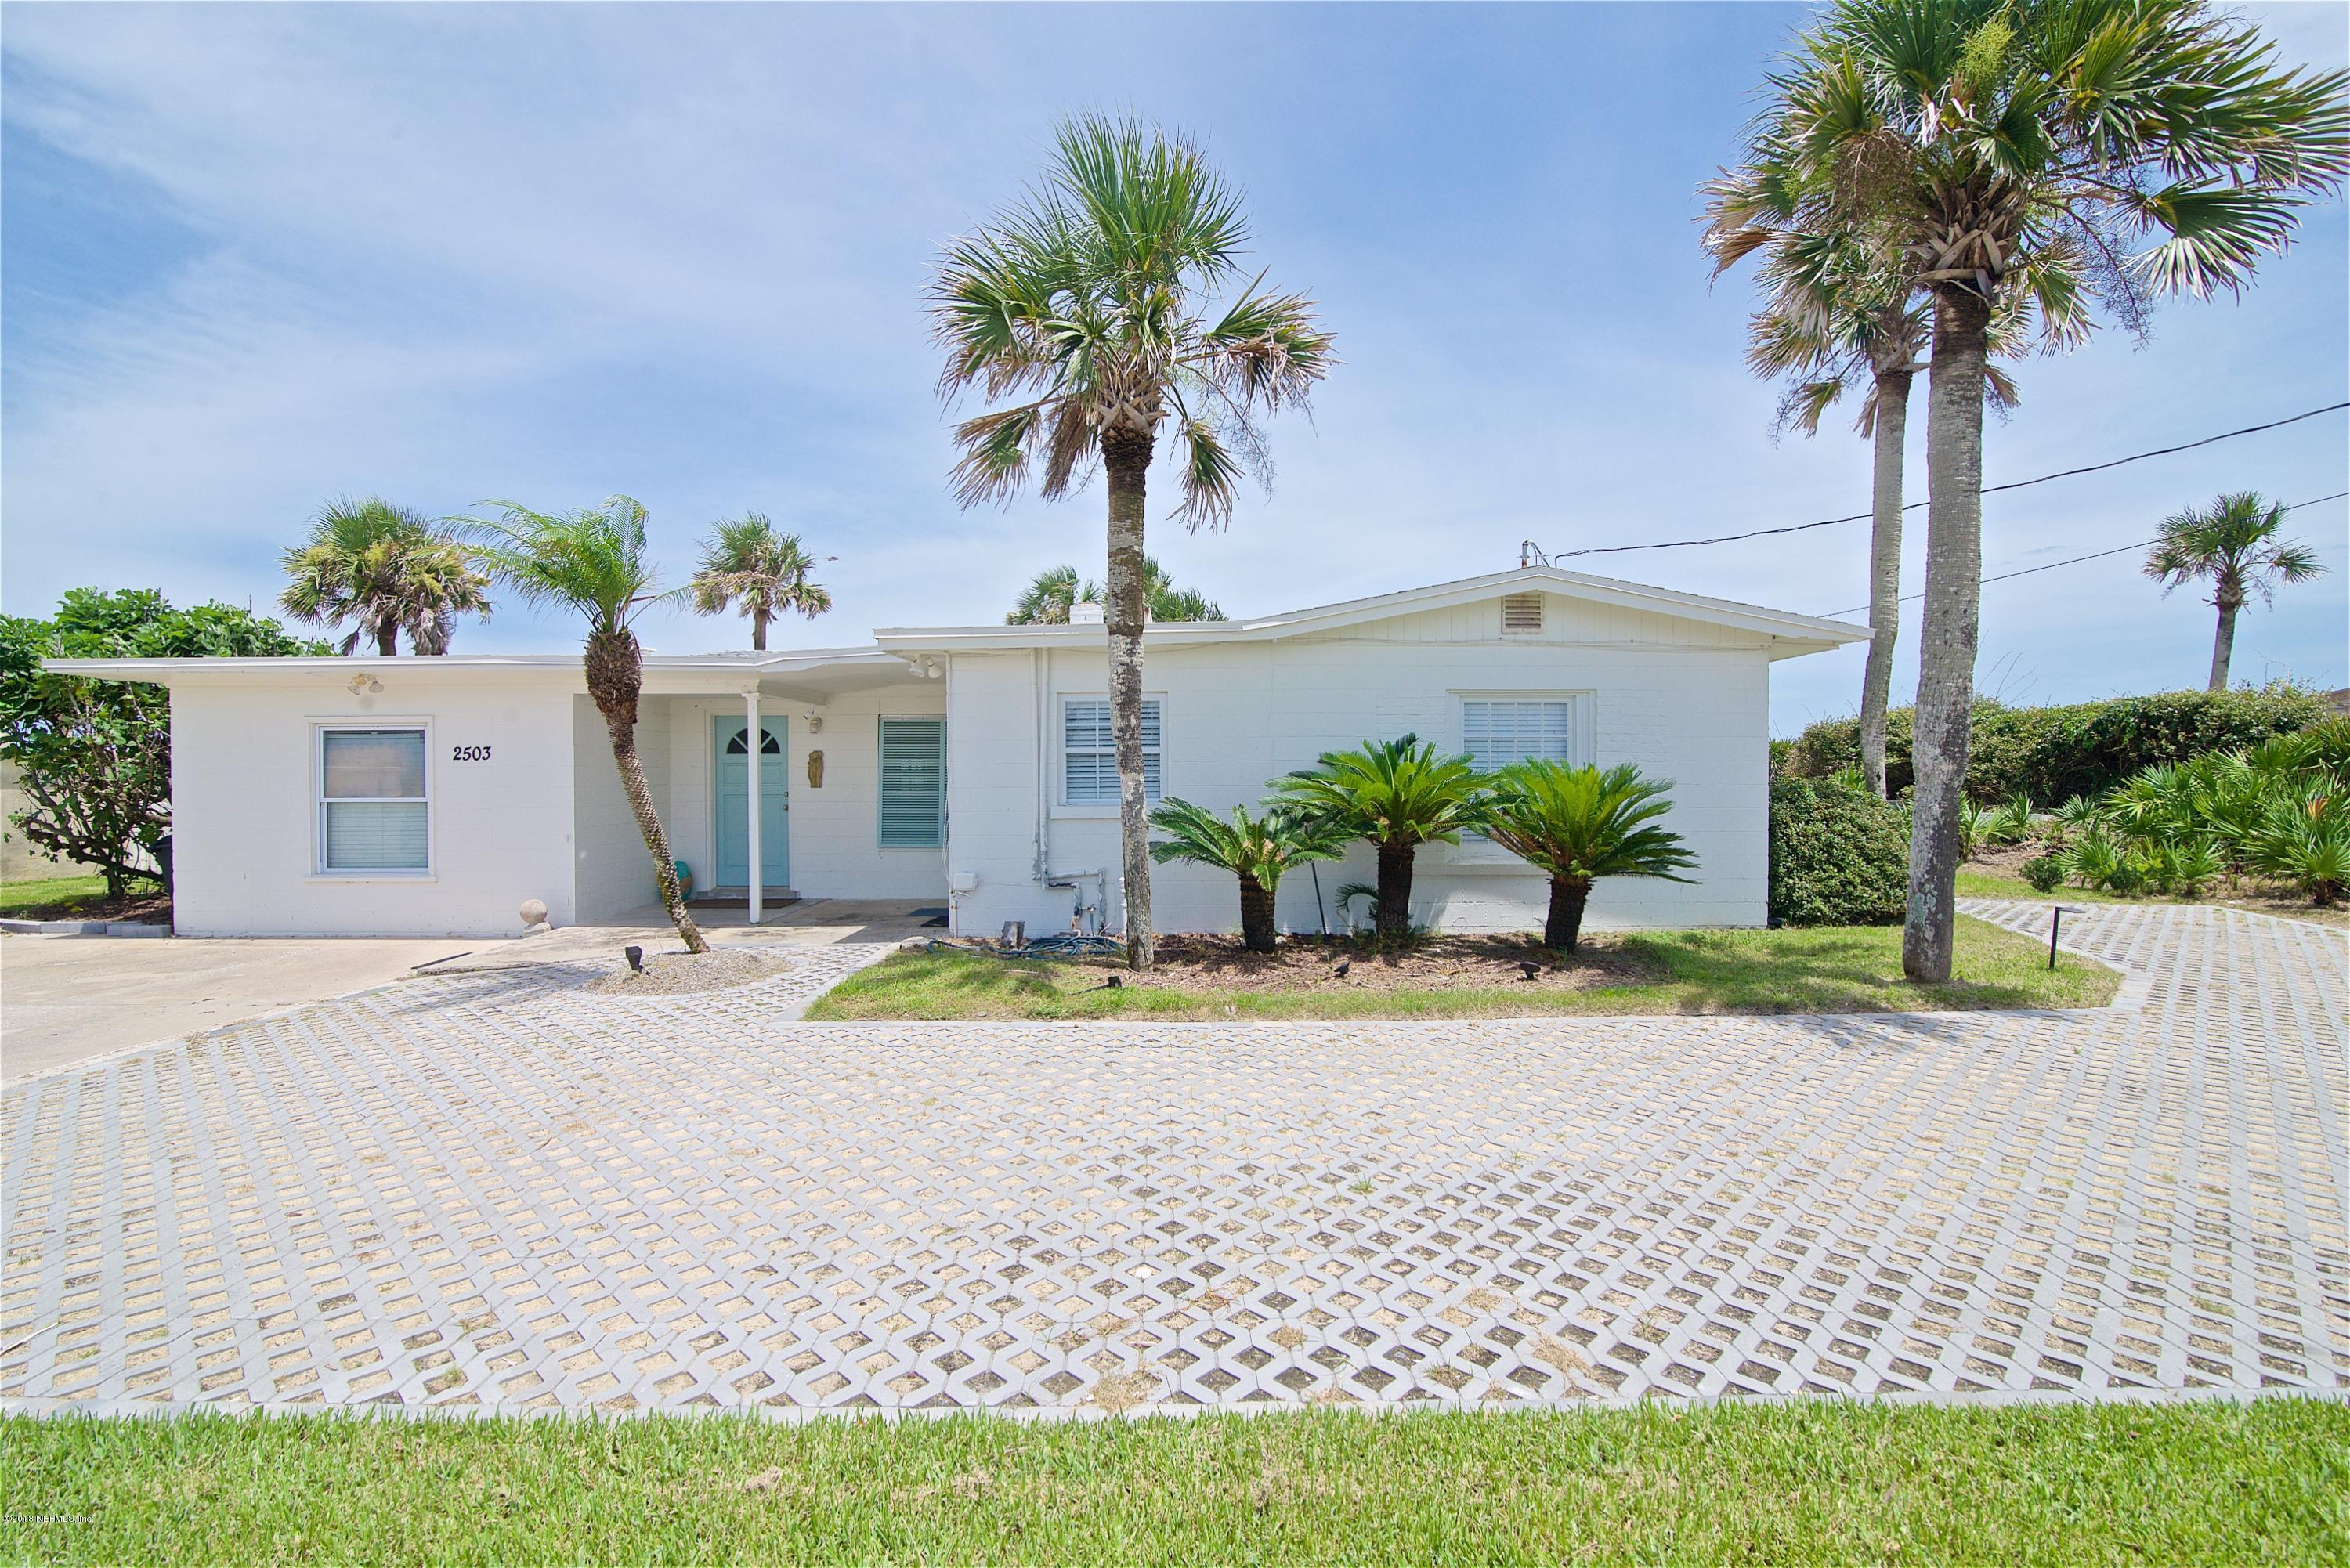 2503 PONTE VEDRA, PONTE VEDRA BEACH, FLORIDA 32082, 4 Bedrooms Bedrooms, ,2 BathroomsBathrooms,Residential - single family,For sale,PONTE VEDRA,951740